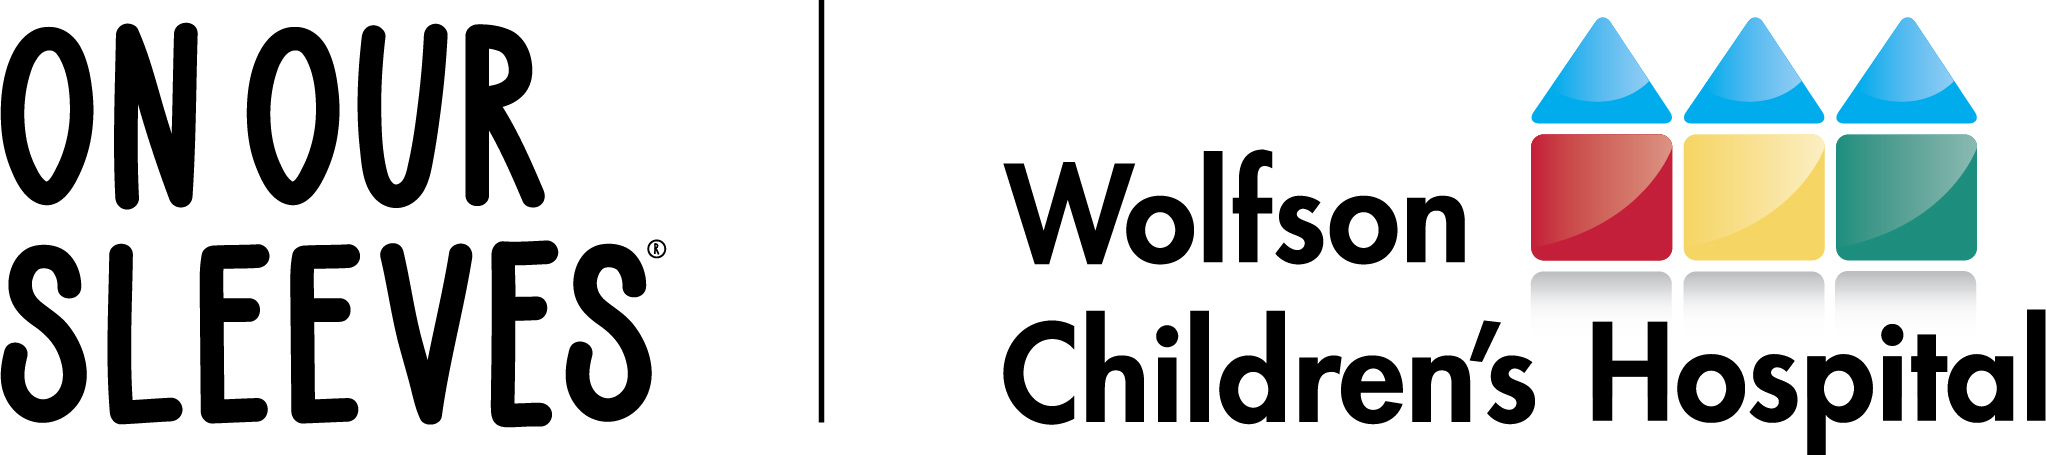 Wolfson Children's Hospital and On Our Sleeves logo